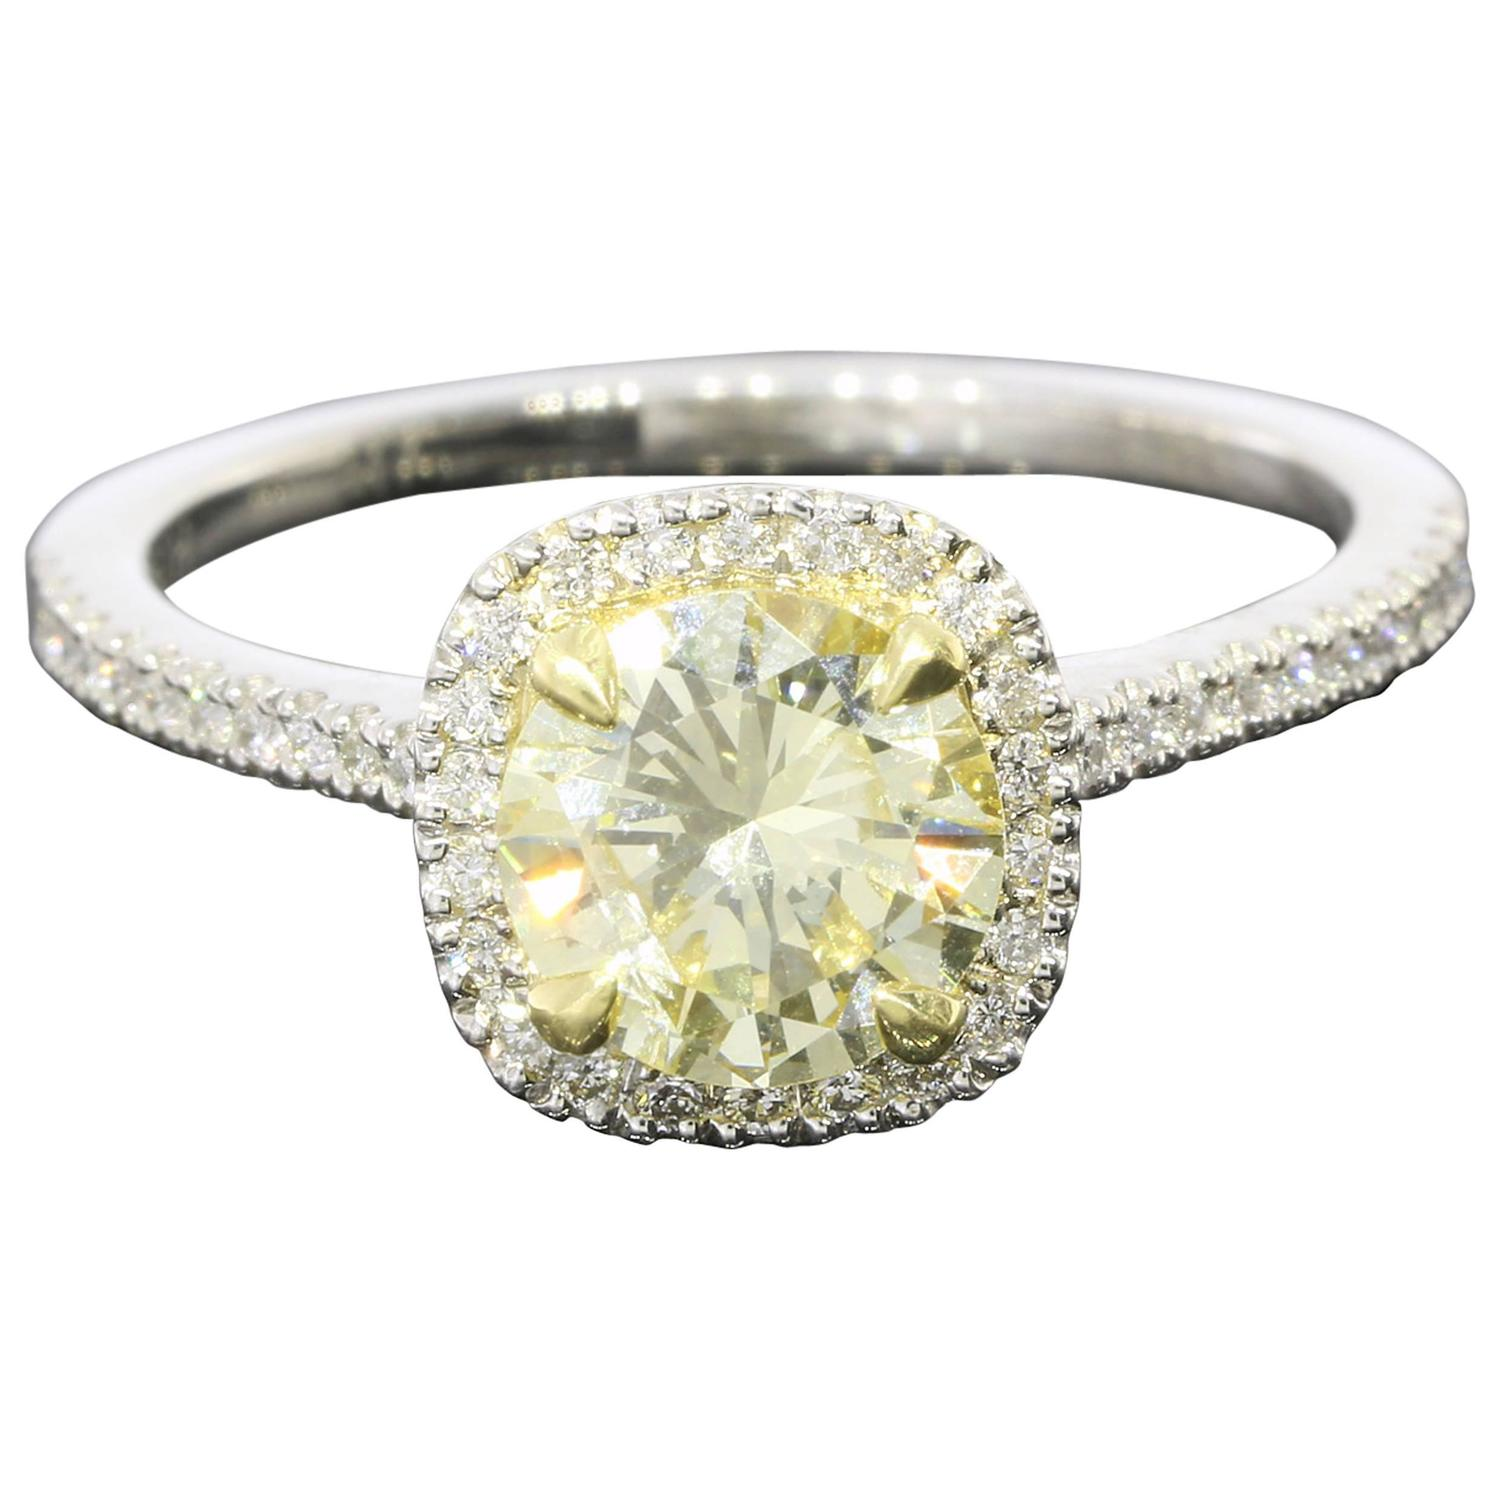 rings engagement radiant canary and wedding ring dunn diamond products gold cut herner sapphire yellow